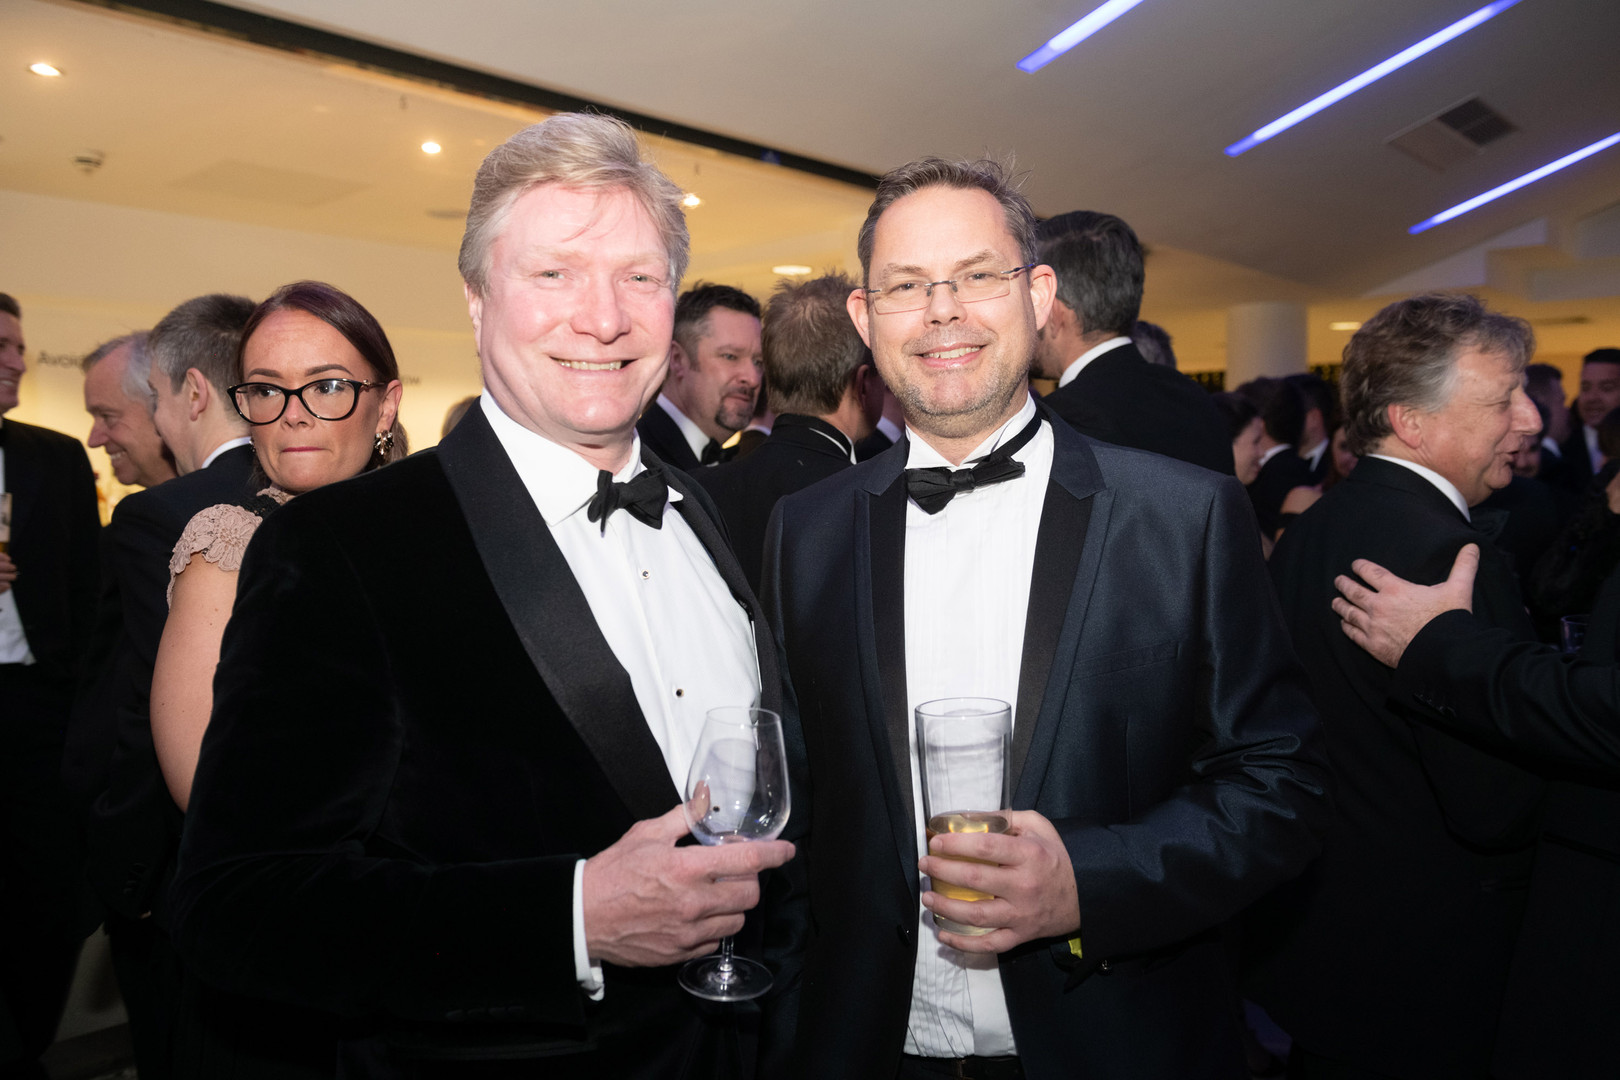 SurreyPropertyAwards_Nov2019_185.jpg